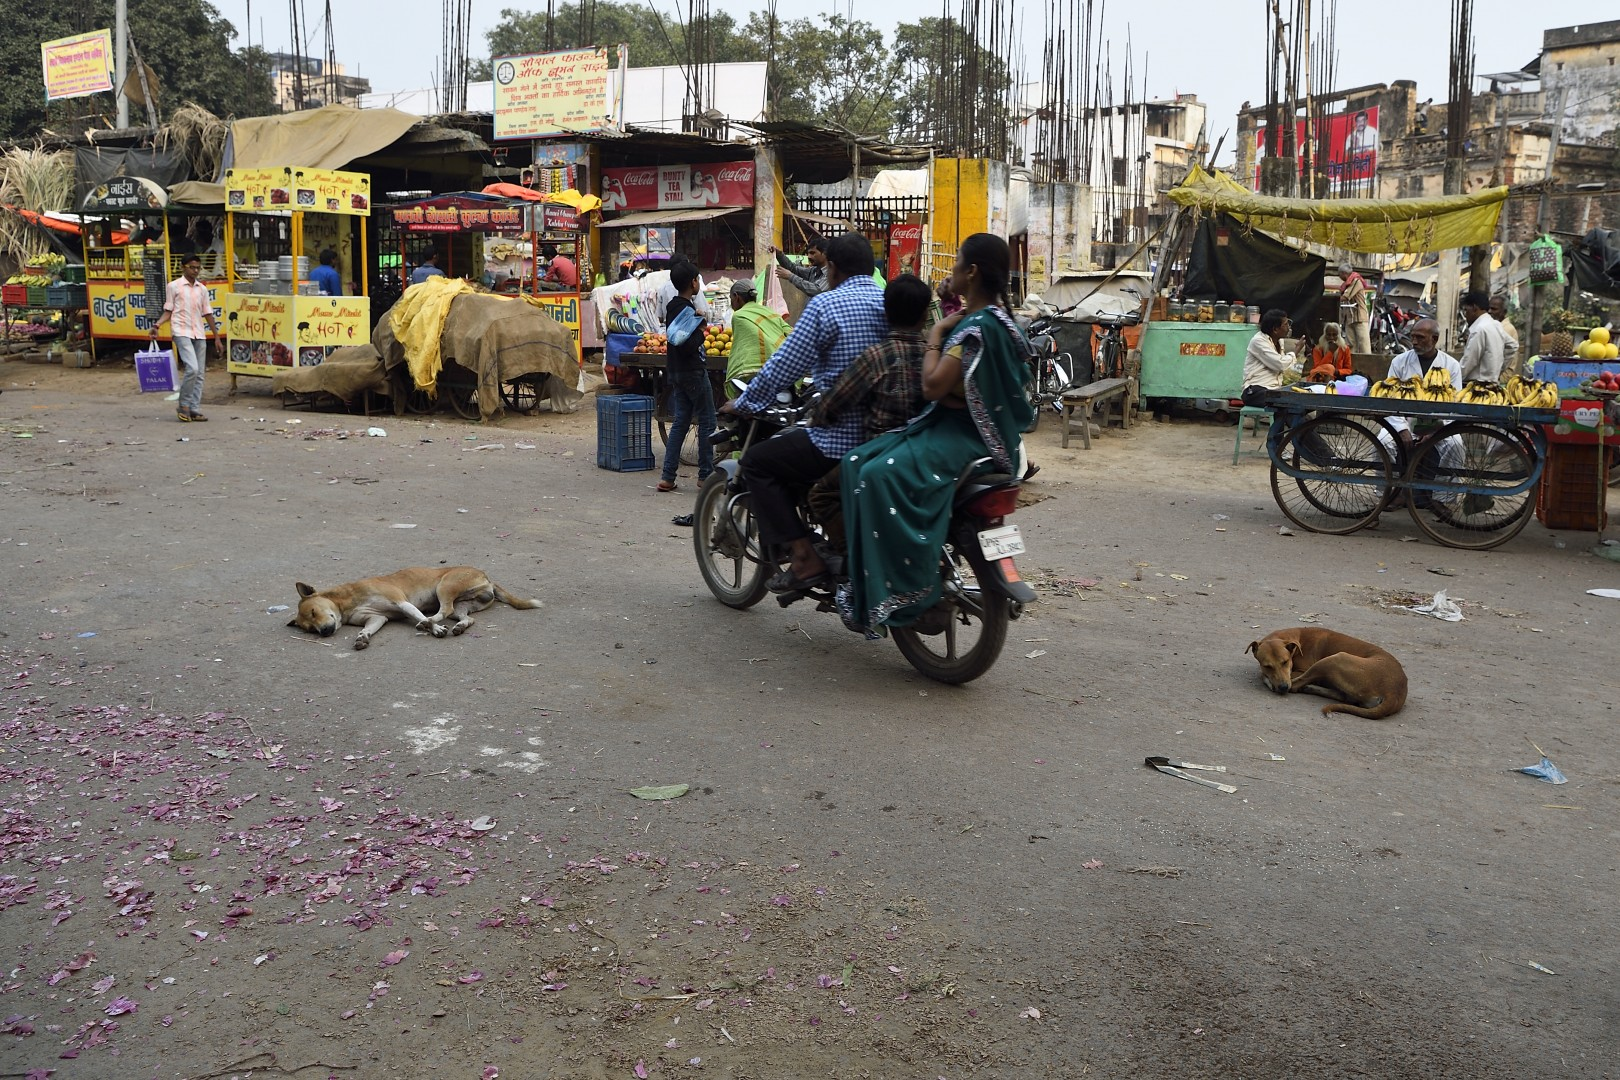 living india, feeling save the dogs are sleeping, they don't care